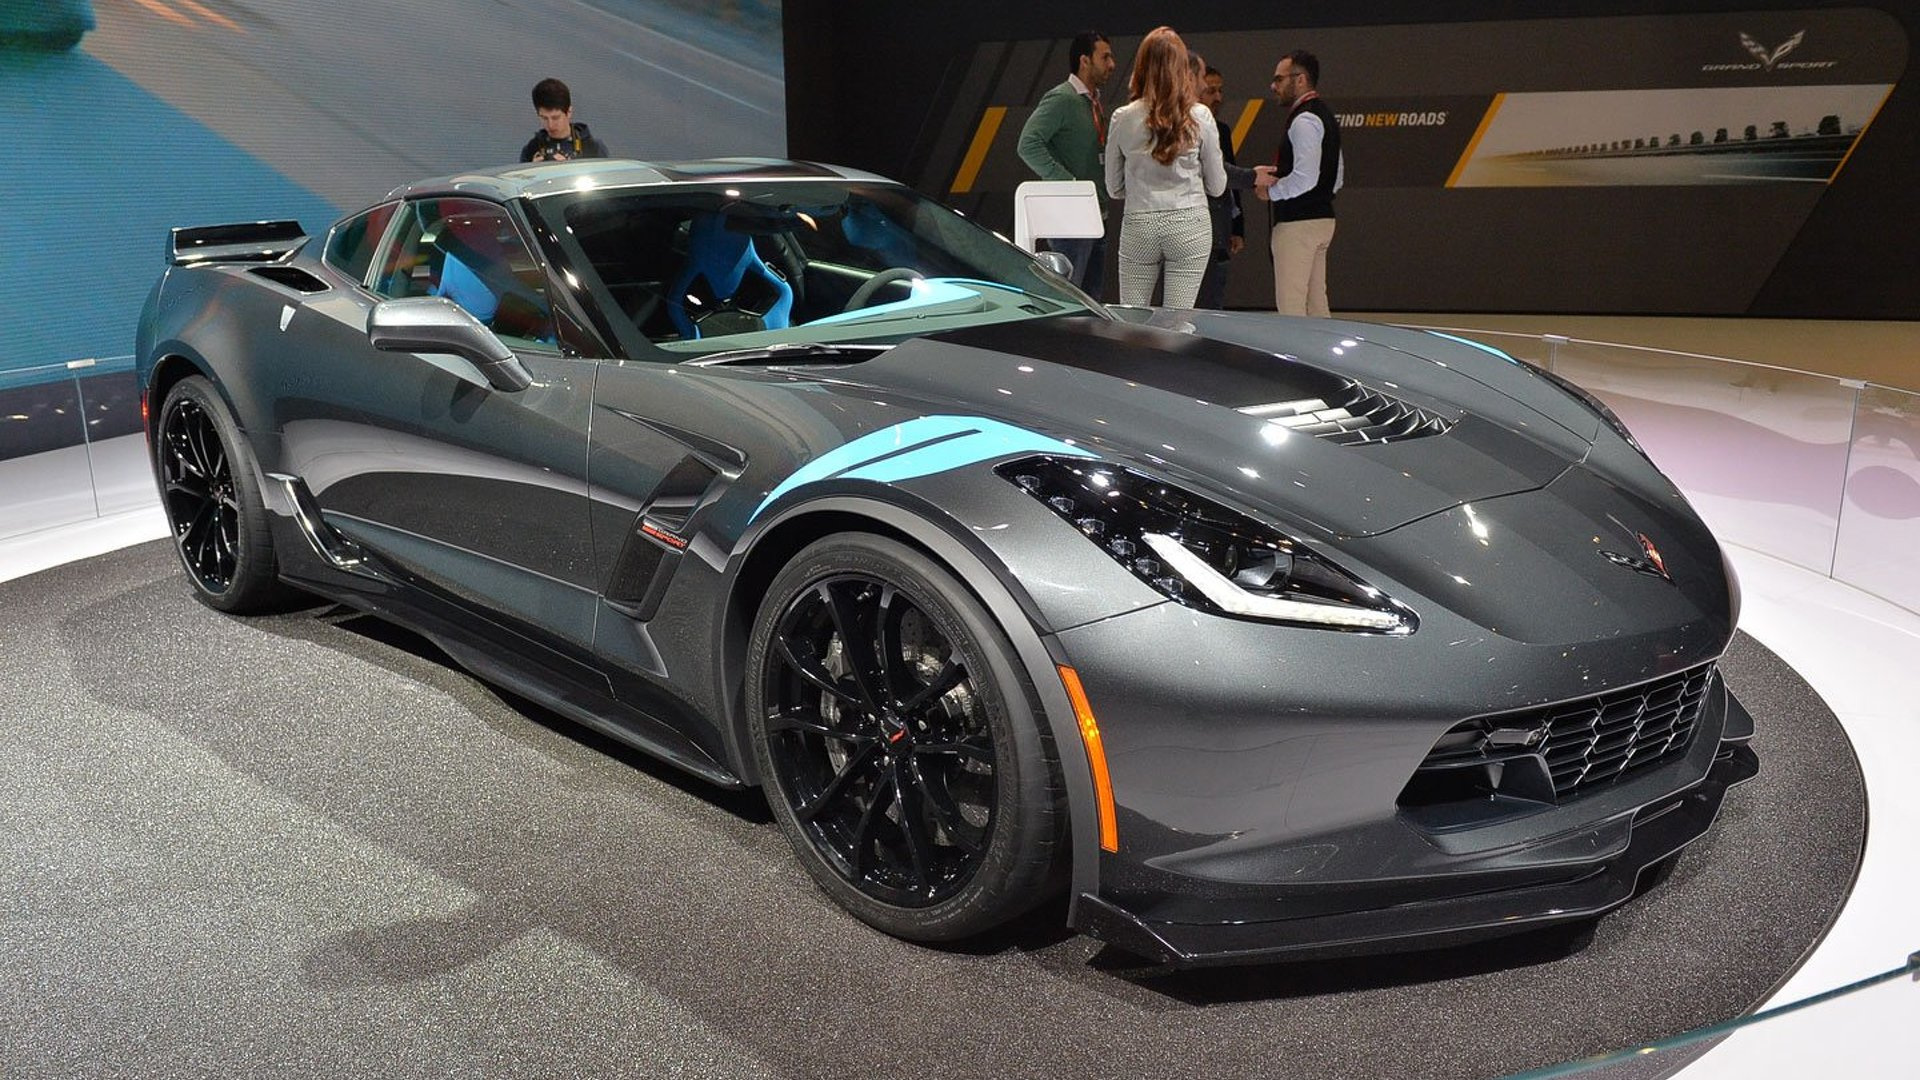 2017 corvette grand sport unveiled with 460 hp. Black Bedroom Furniture Sets. Home Design Ideas